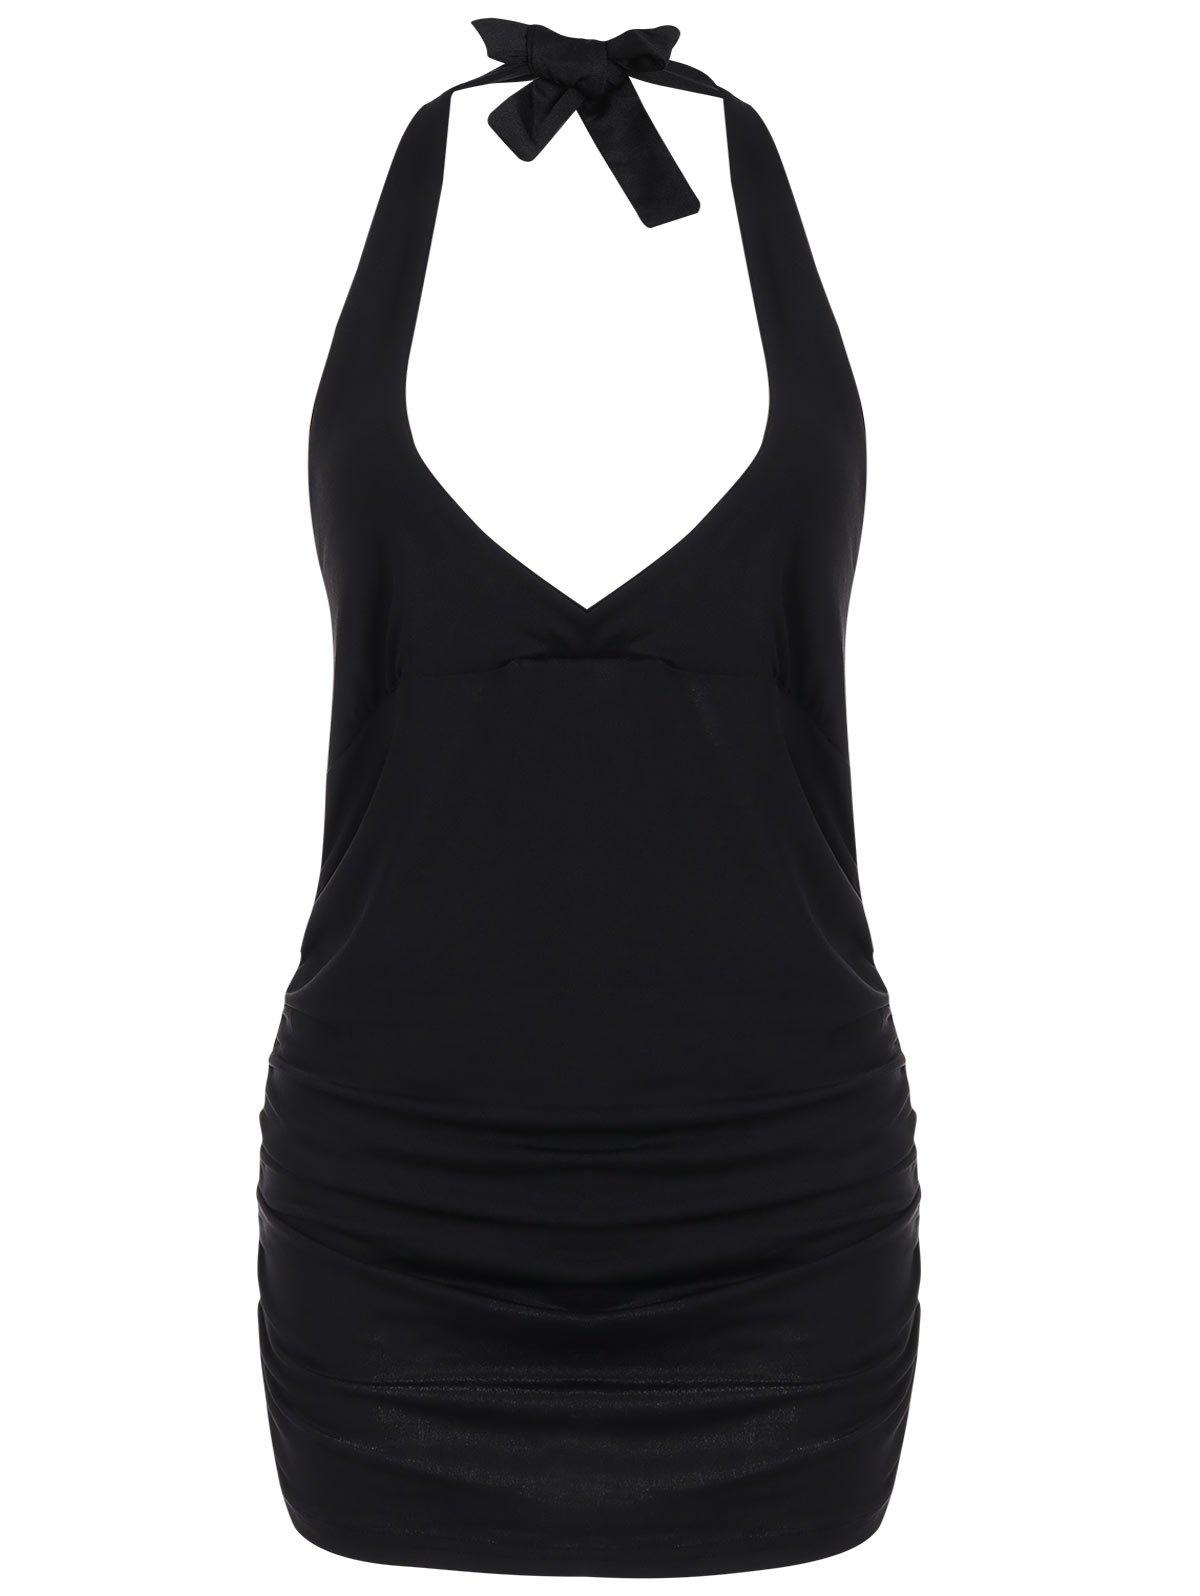 Halter Low Cut Backless Camisole - BLACK L